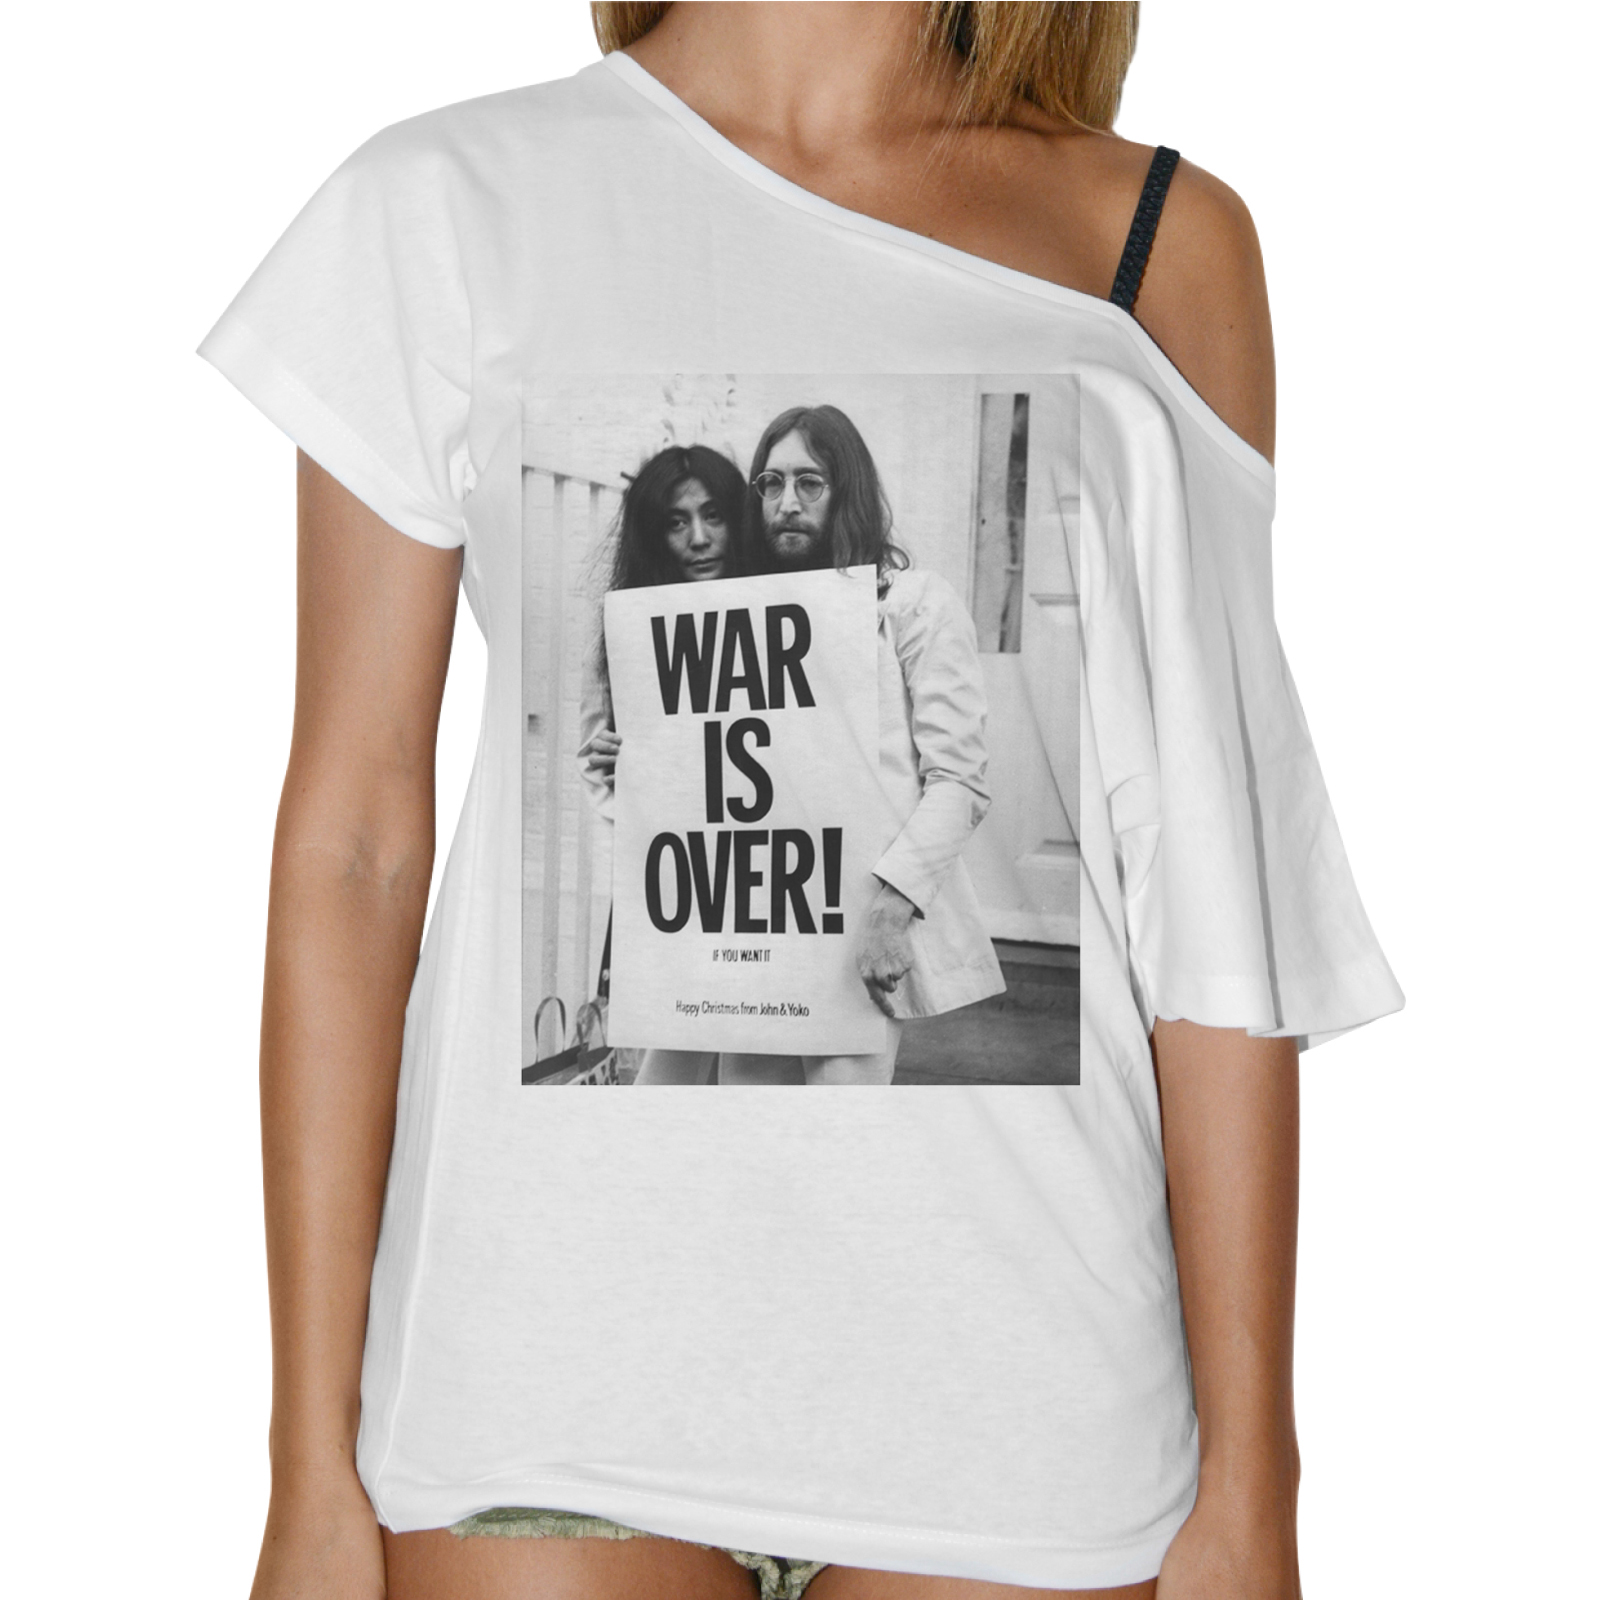 T-Shirt Donna Collo Barca WAR IS OVER